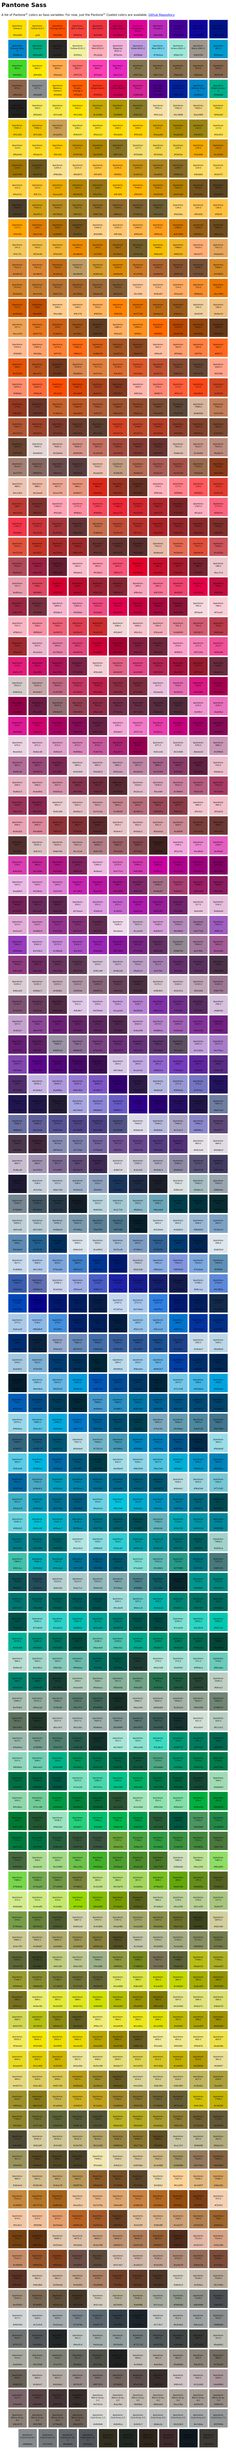 Navy Blue Microfiber Cloth Fabric Texture Free High